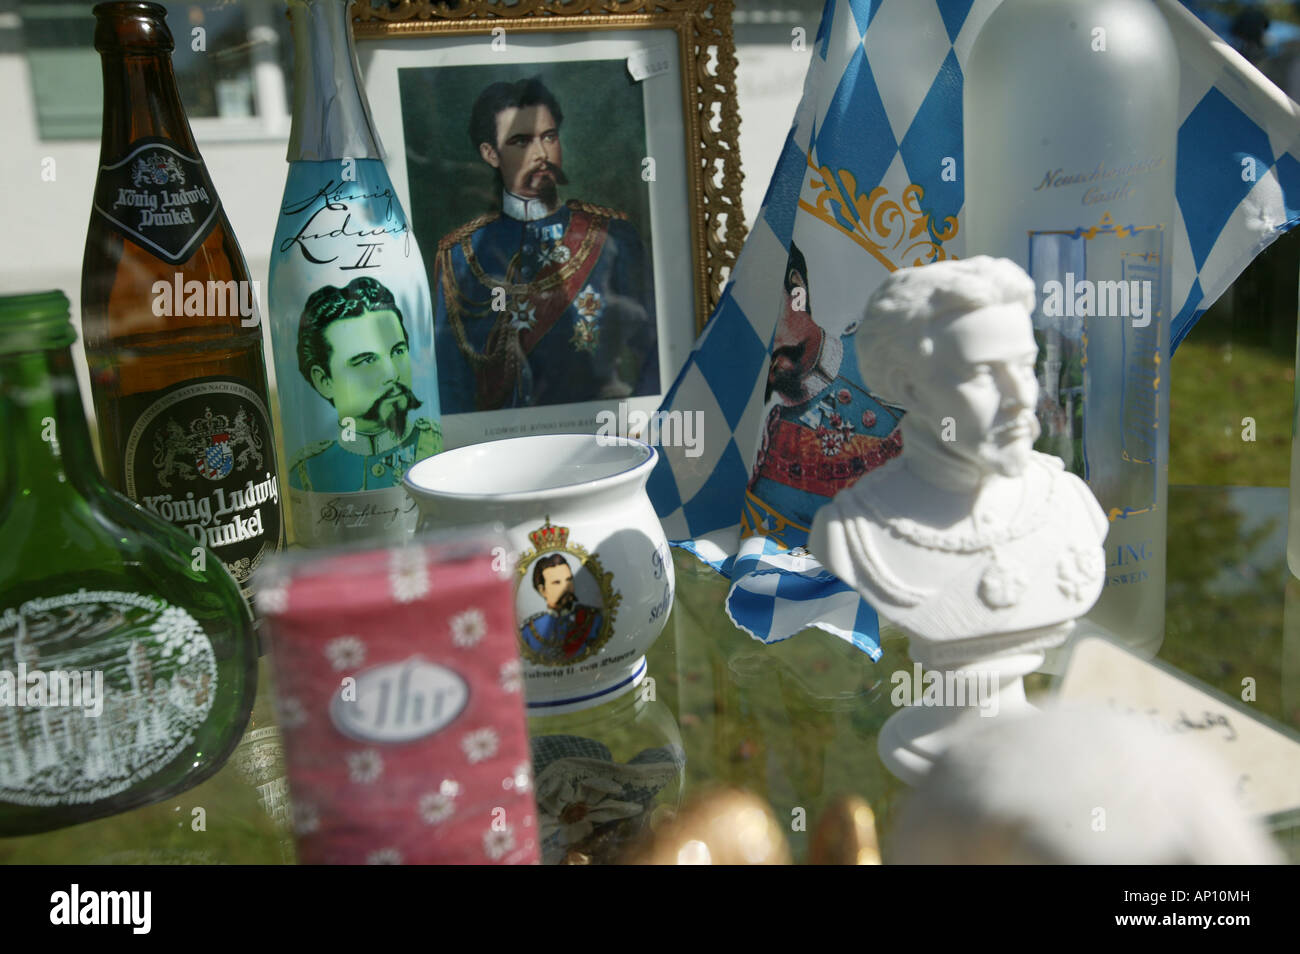 Devotional objects, King Ludwig, King Ludwig devotional objects, Guesthouse at Wieskirche, Bavaria, Koenig Ludwig - Stock Image